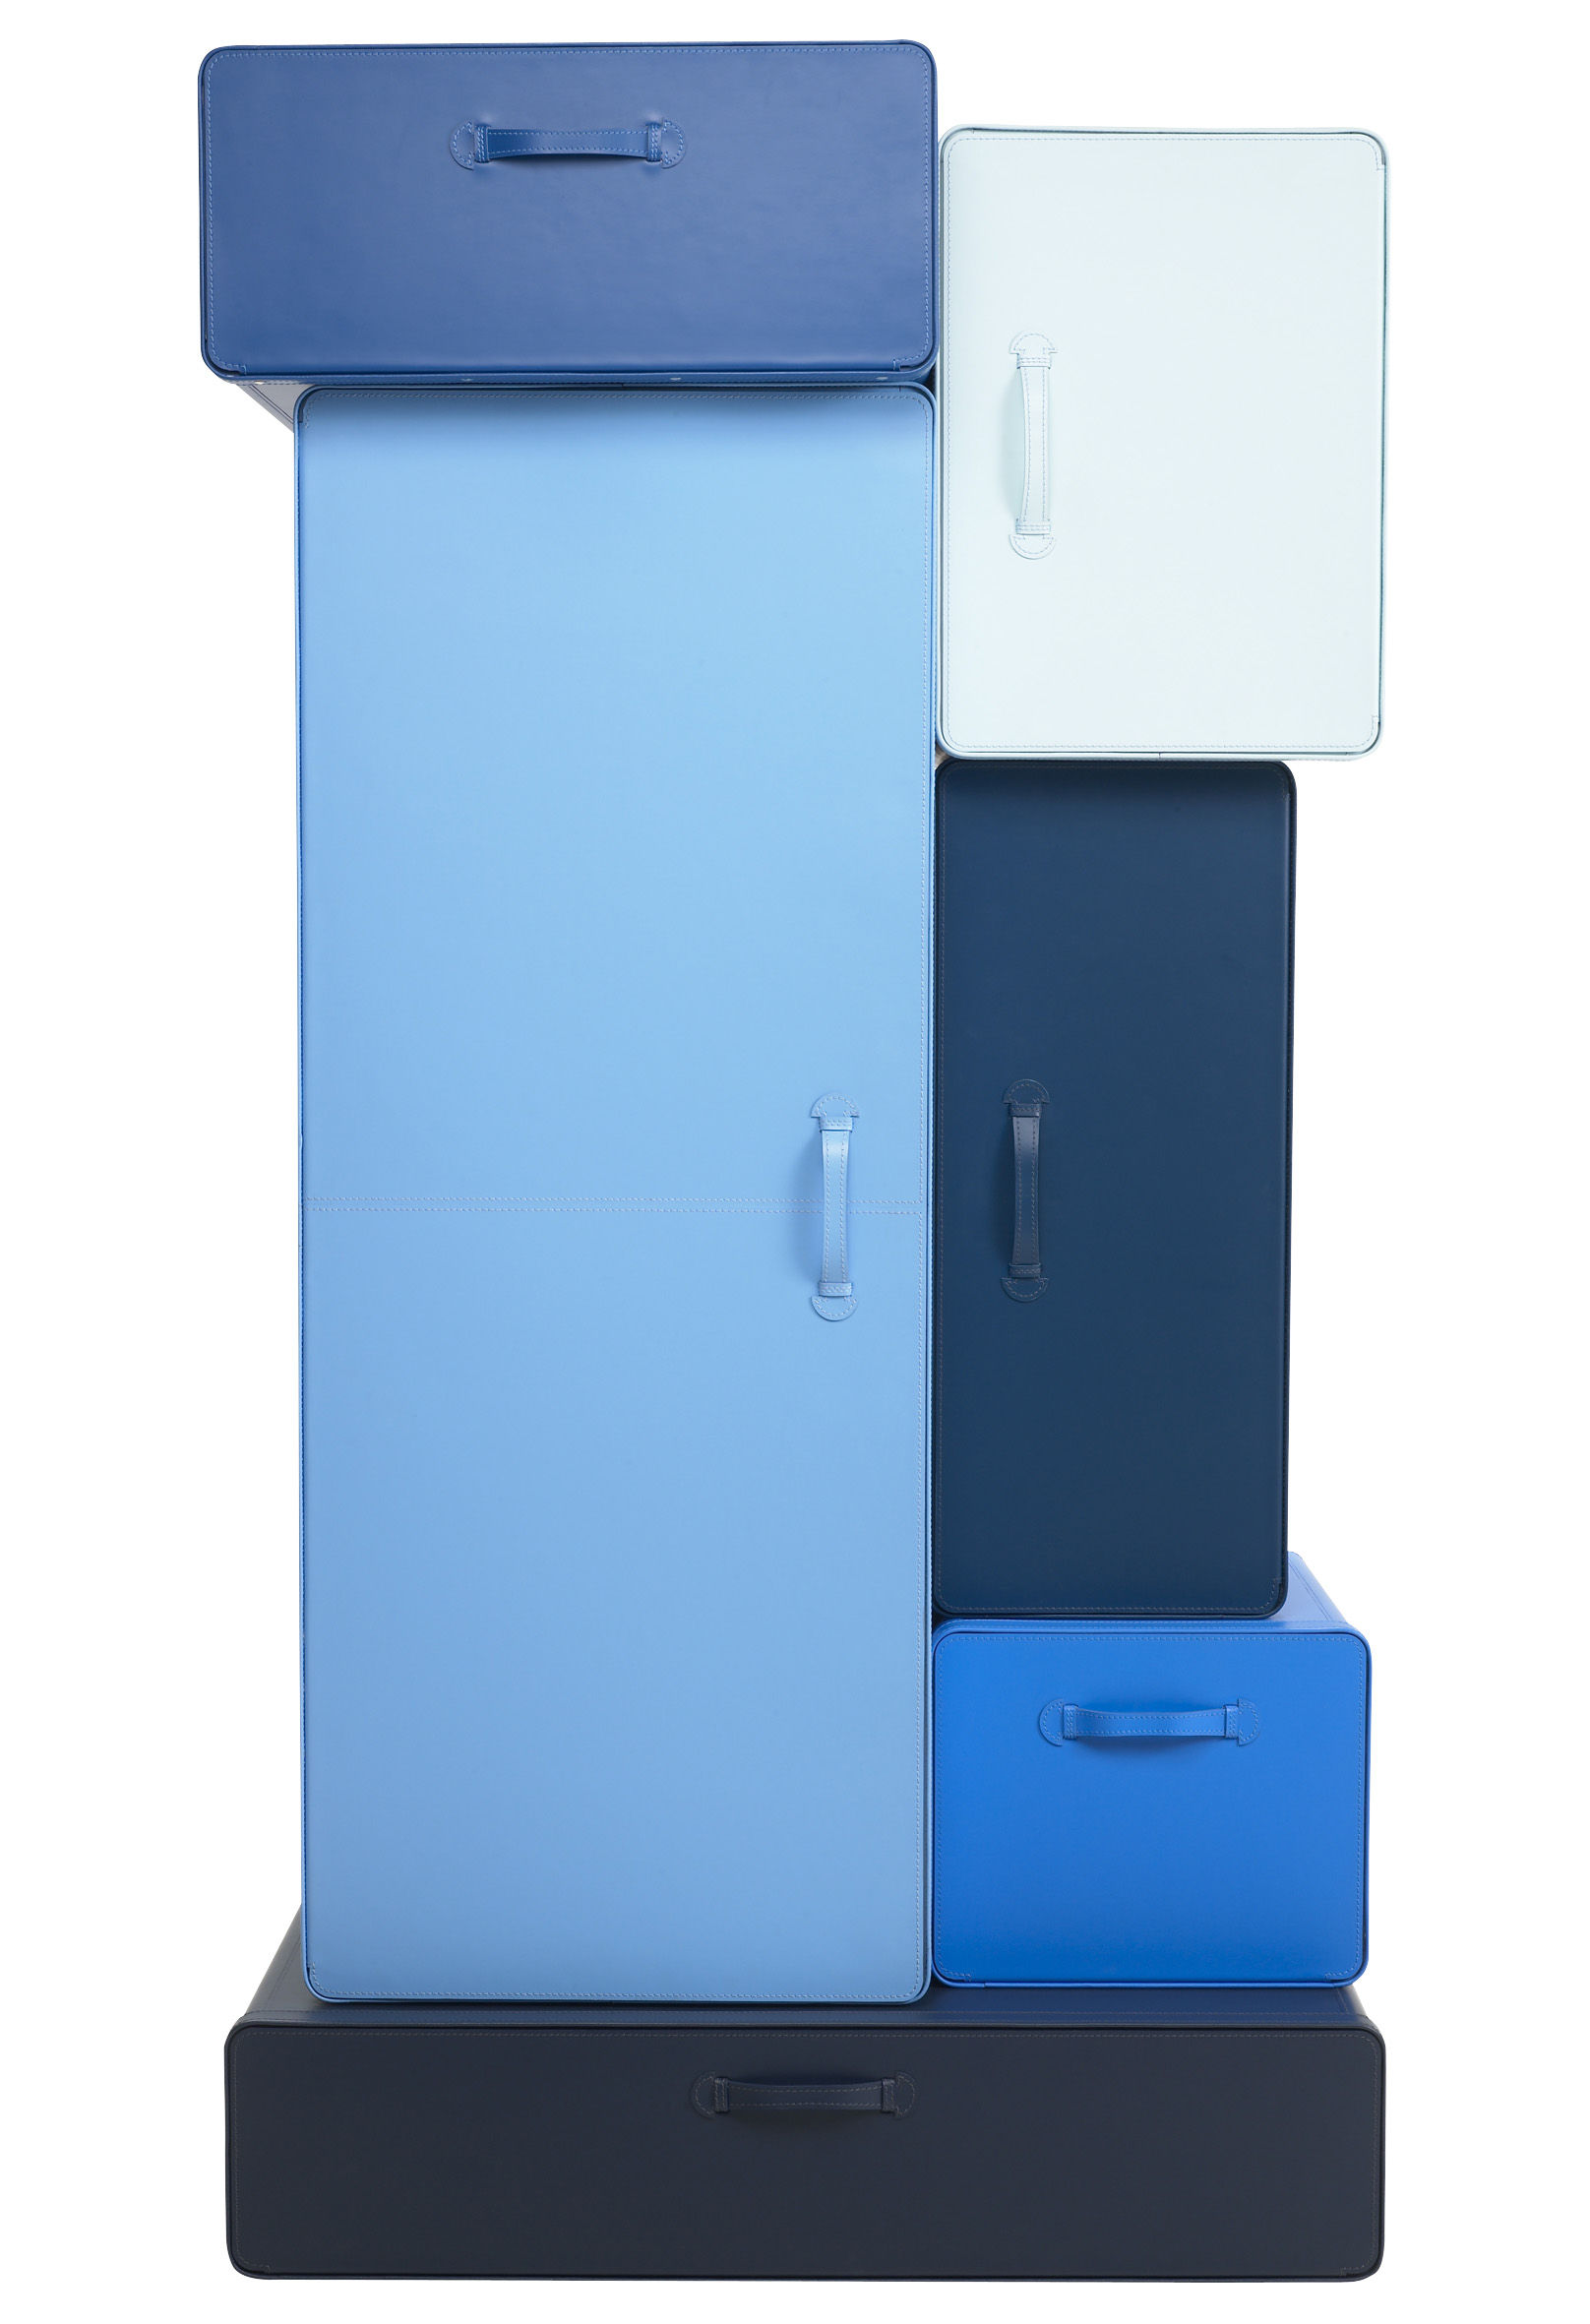 Valises wardrobe cabinet multicolour shades of blue by for Bathroom cabinets 70cm wide